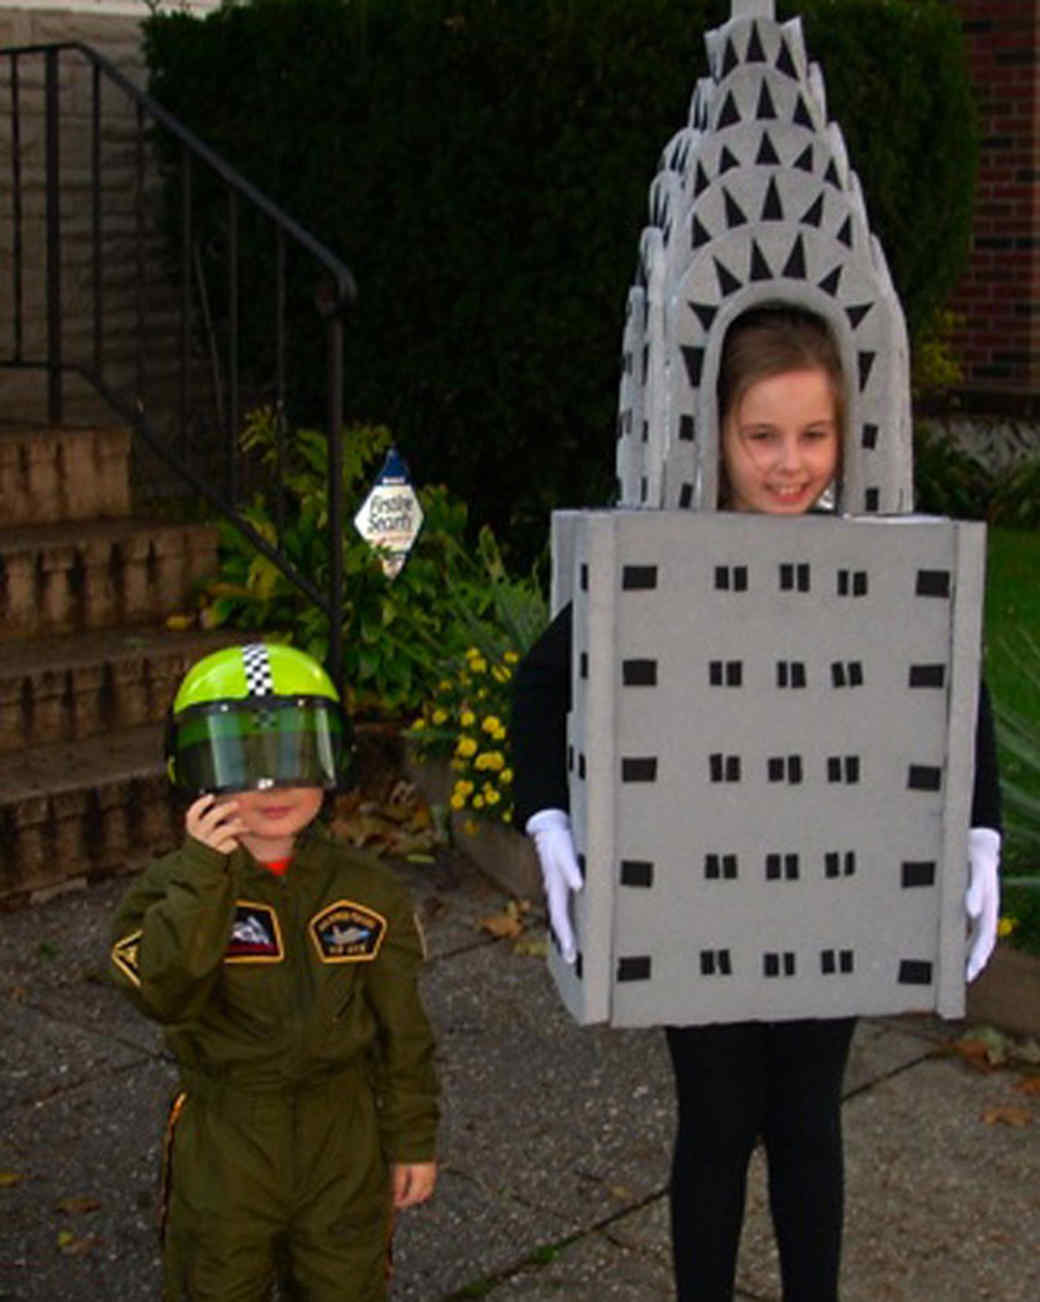 Vending Machine Halloween Costume